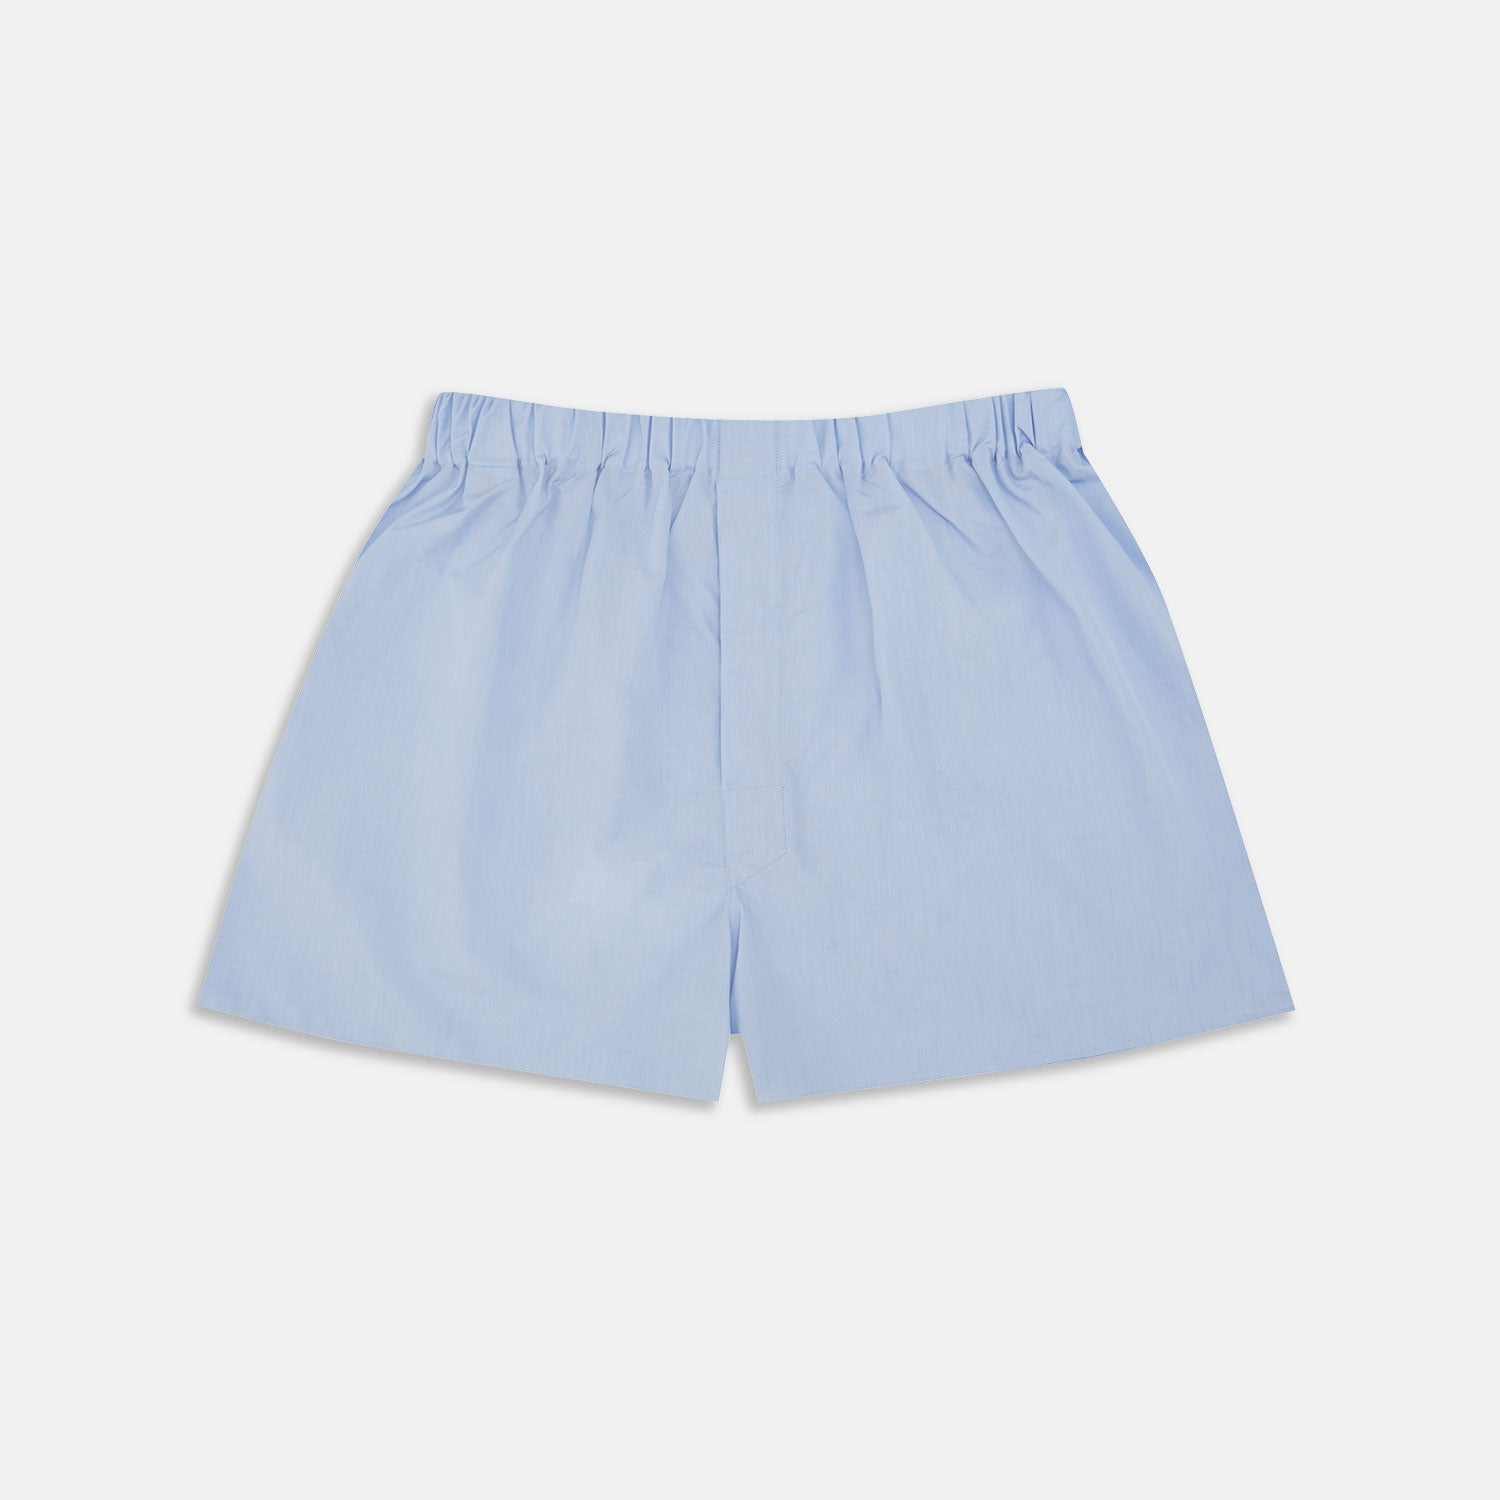 Plain Blue Sea Island Quality Cotton Boxer Shorts